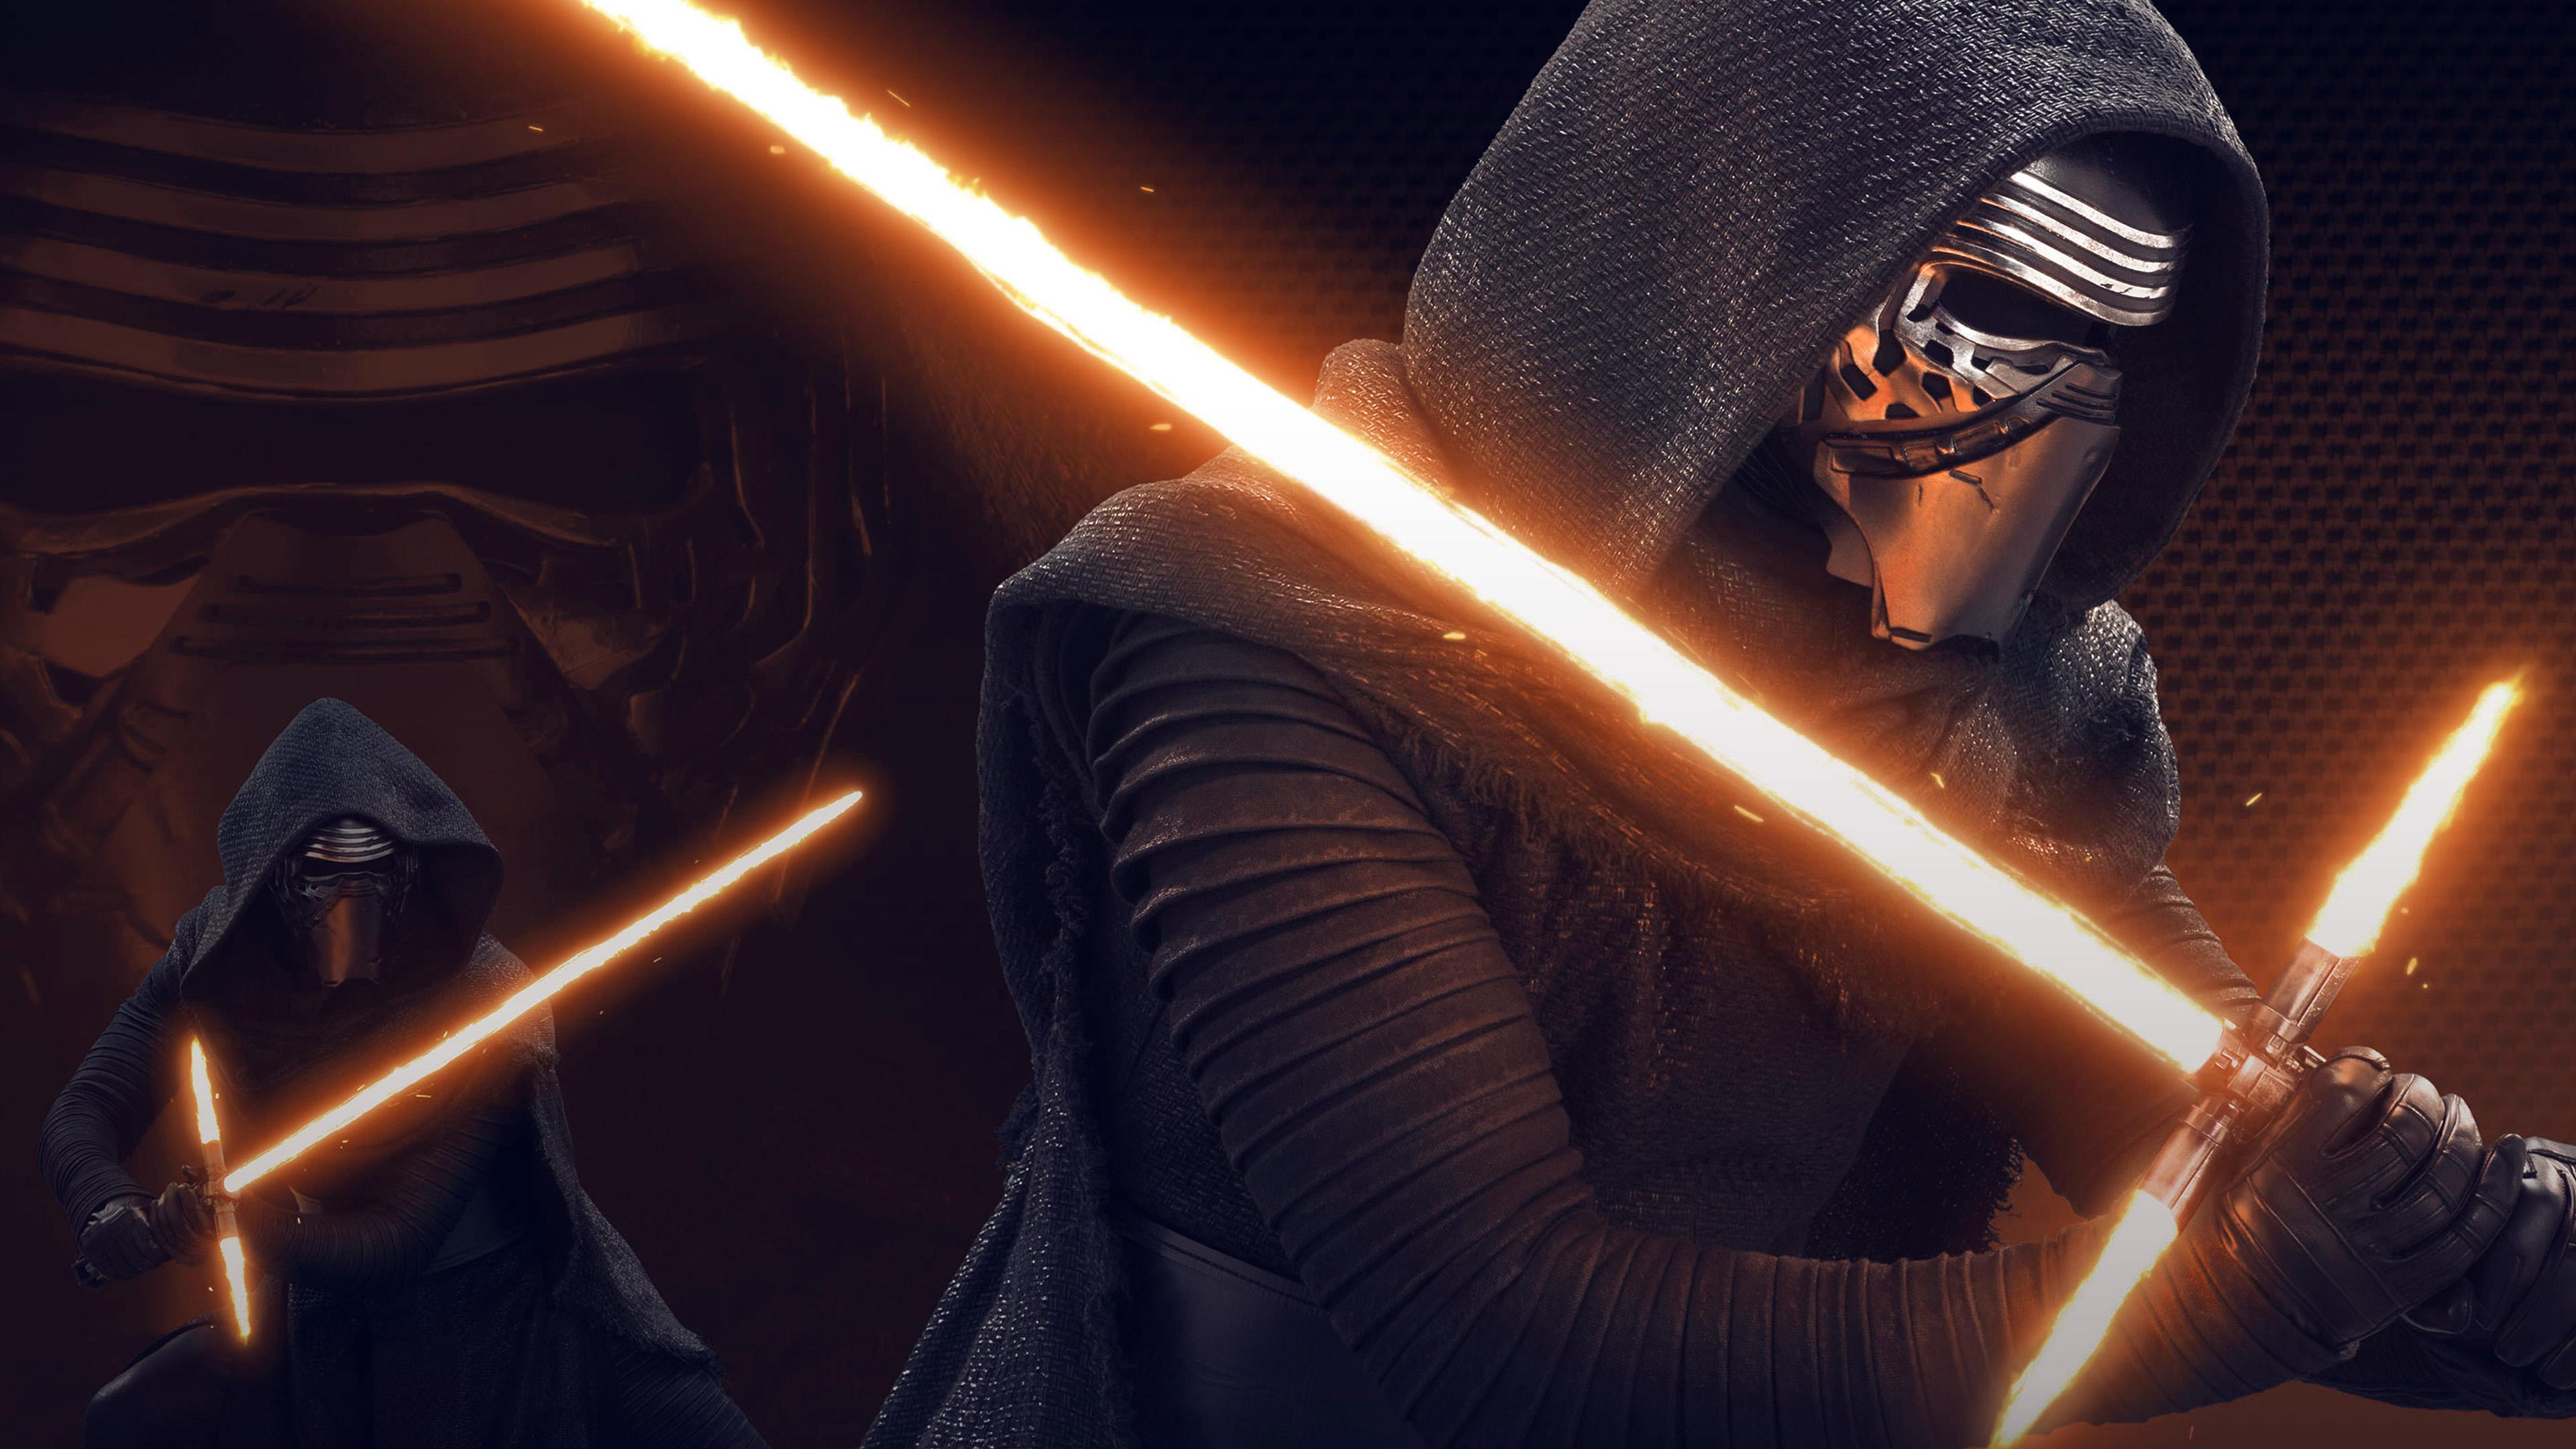 Kylo Ren Wallpaper Posted By Ethan Simpson